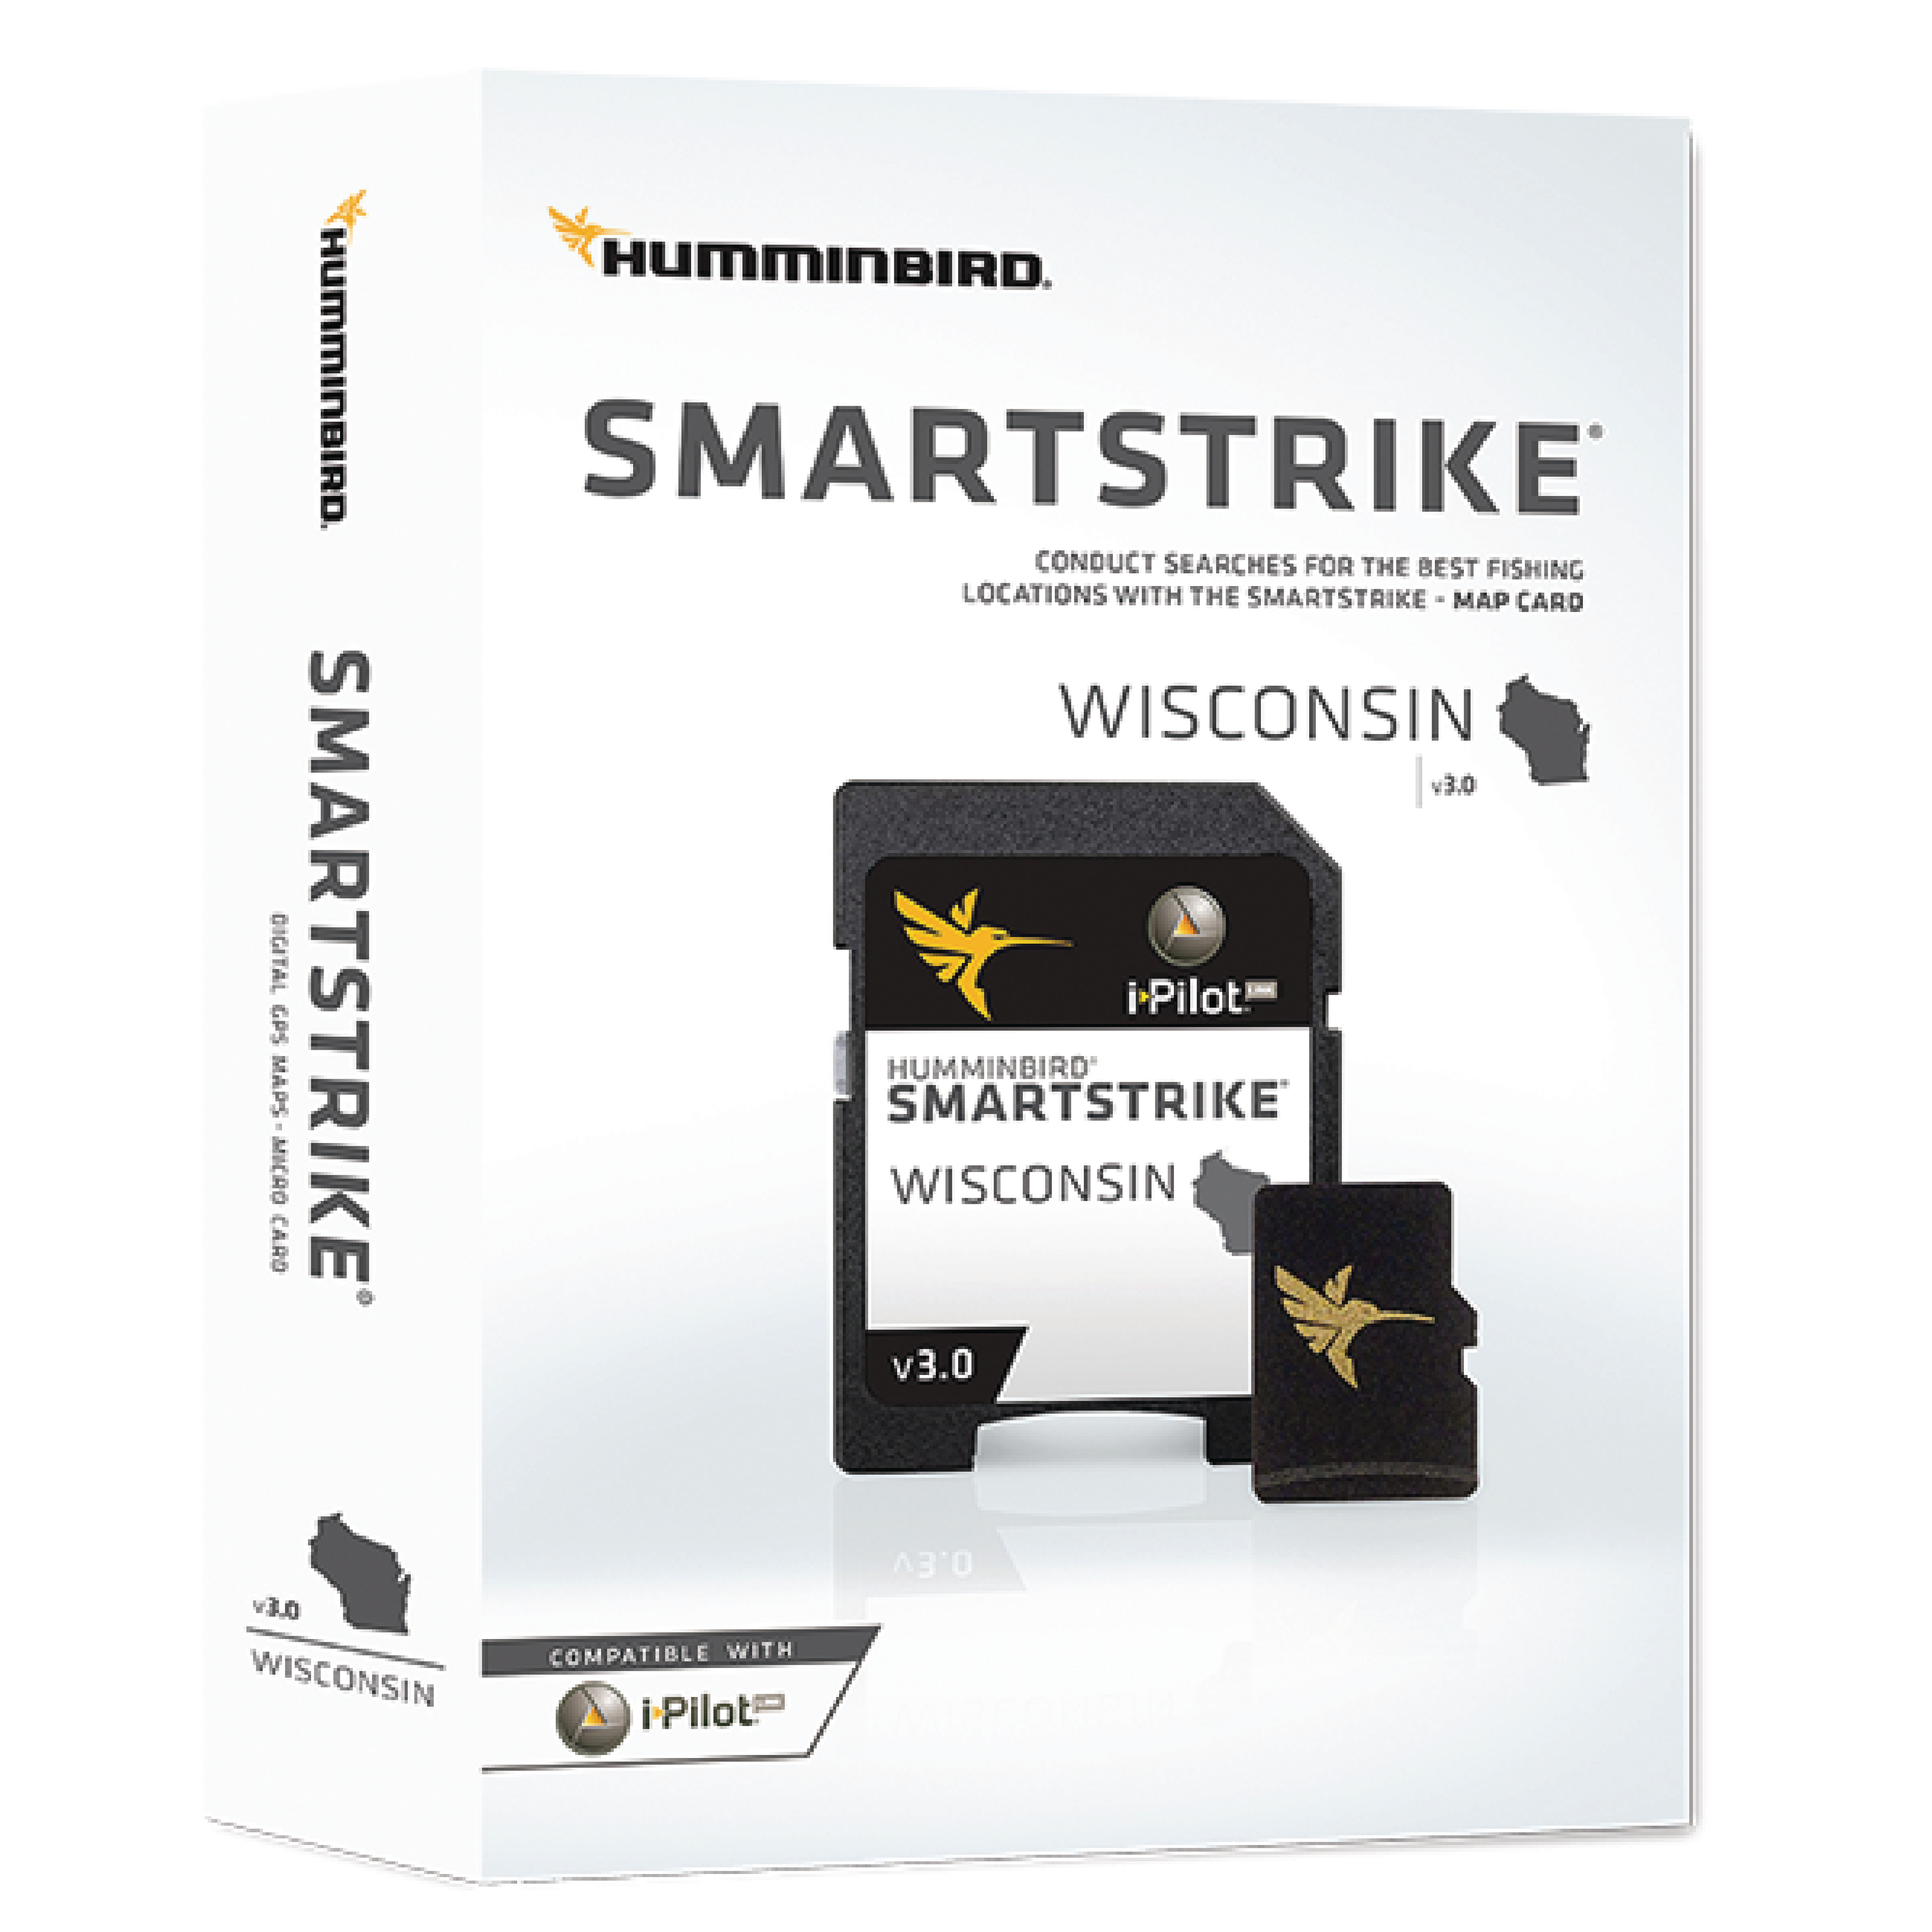 Humminbird 600041-3 Smartstrike Version 3.0 Digital Fishing Map Card for Wisconsin